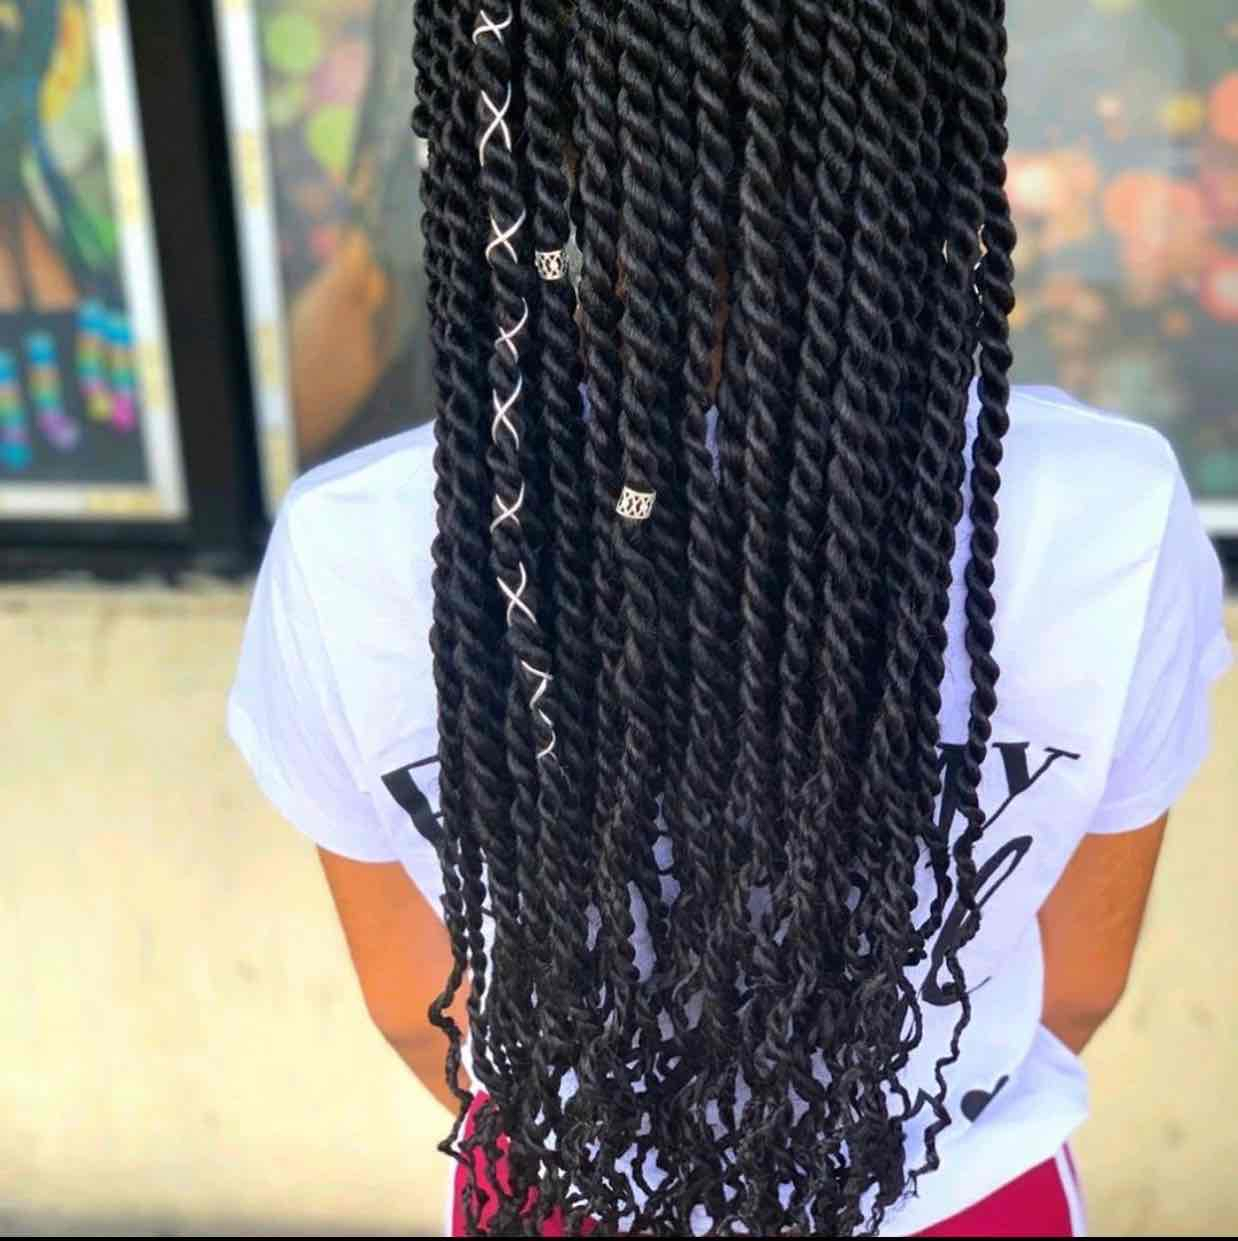 salon de coiffure afro tresse tresses box braids crochet braids vanilles tissages paris 75 77 78 91 92 93 94 95 OEQNBRCP